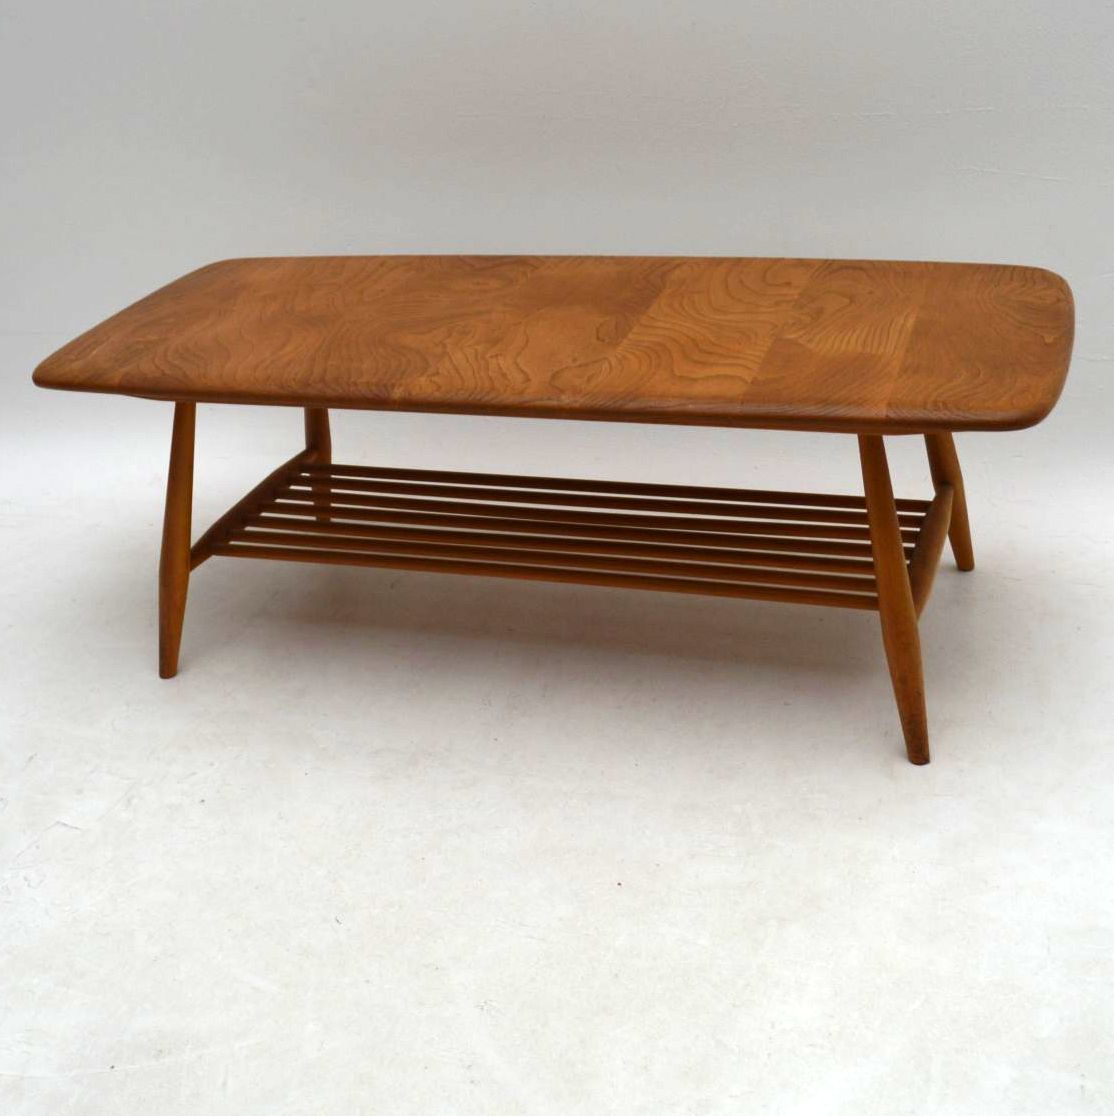 1960s Vintage Ercol Coffee Table in Solid Elm Retrospective